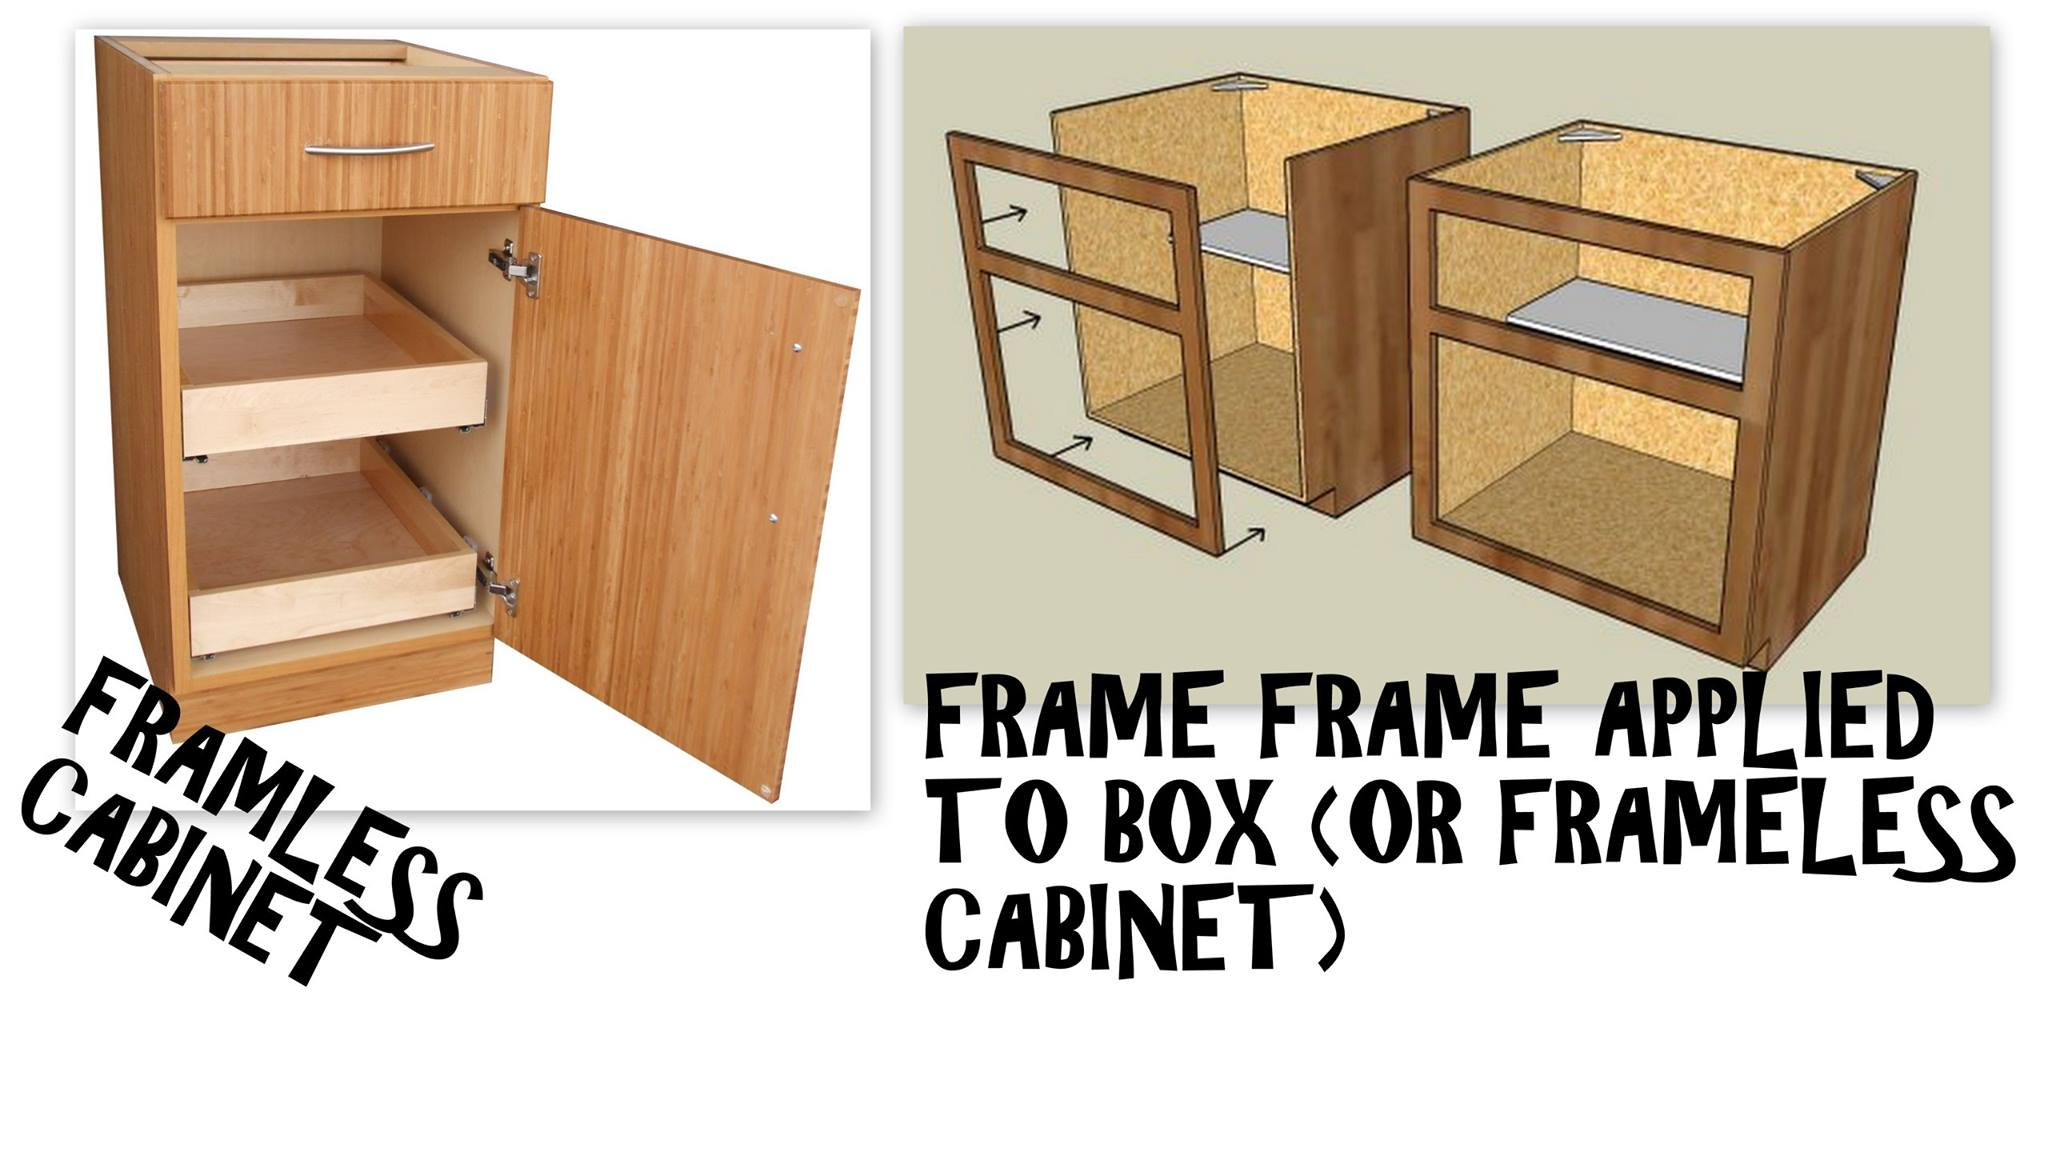 Frameless Vs Faceframe Cabinets What 39 S The Difference